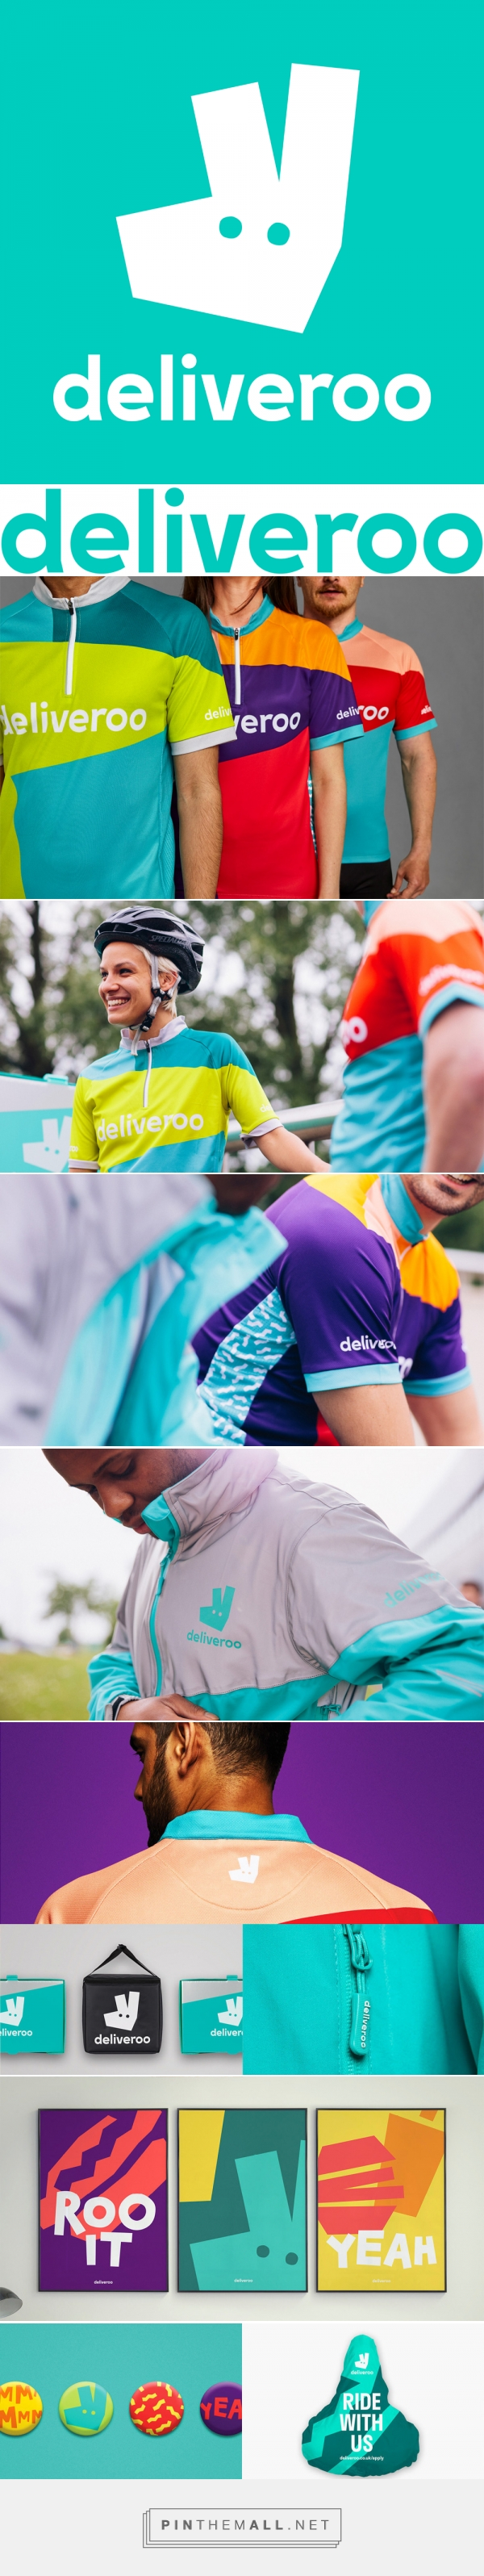 90d7a51b6 Brand New  New Logo and Identity for Deliveroo by DesignStudio... - a  grouped…